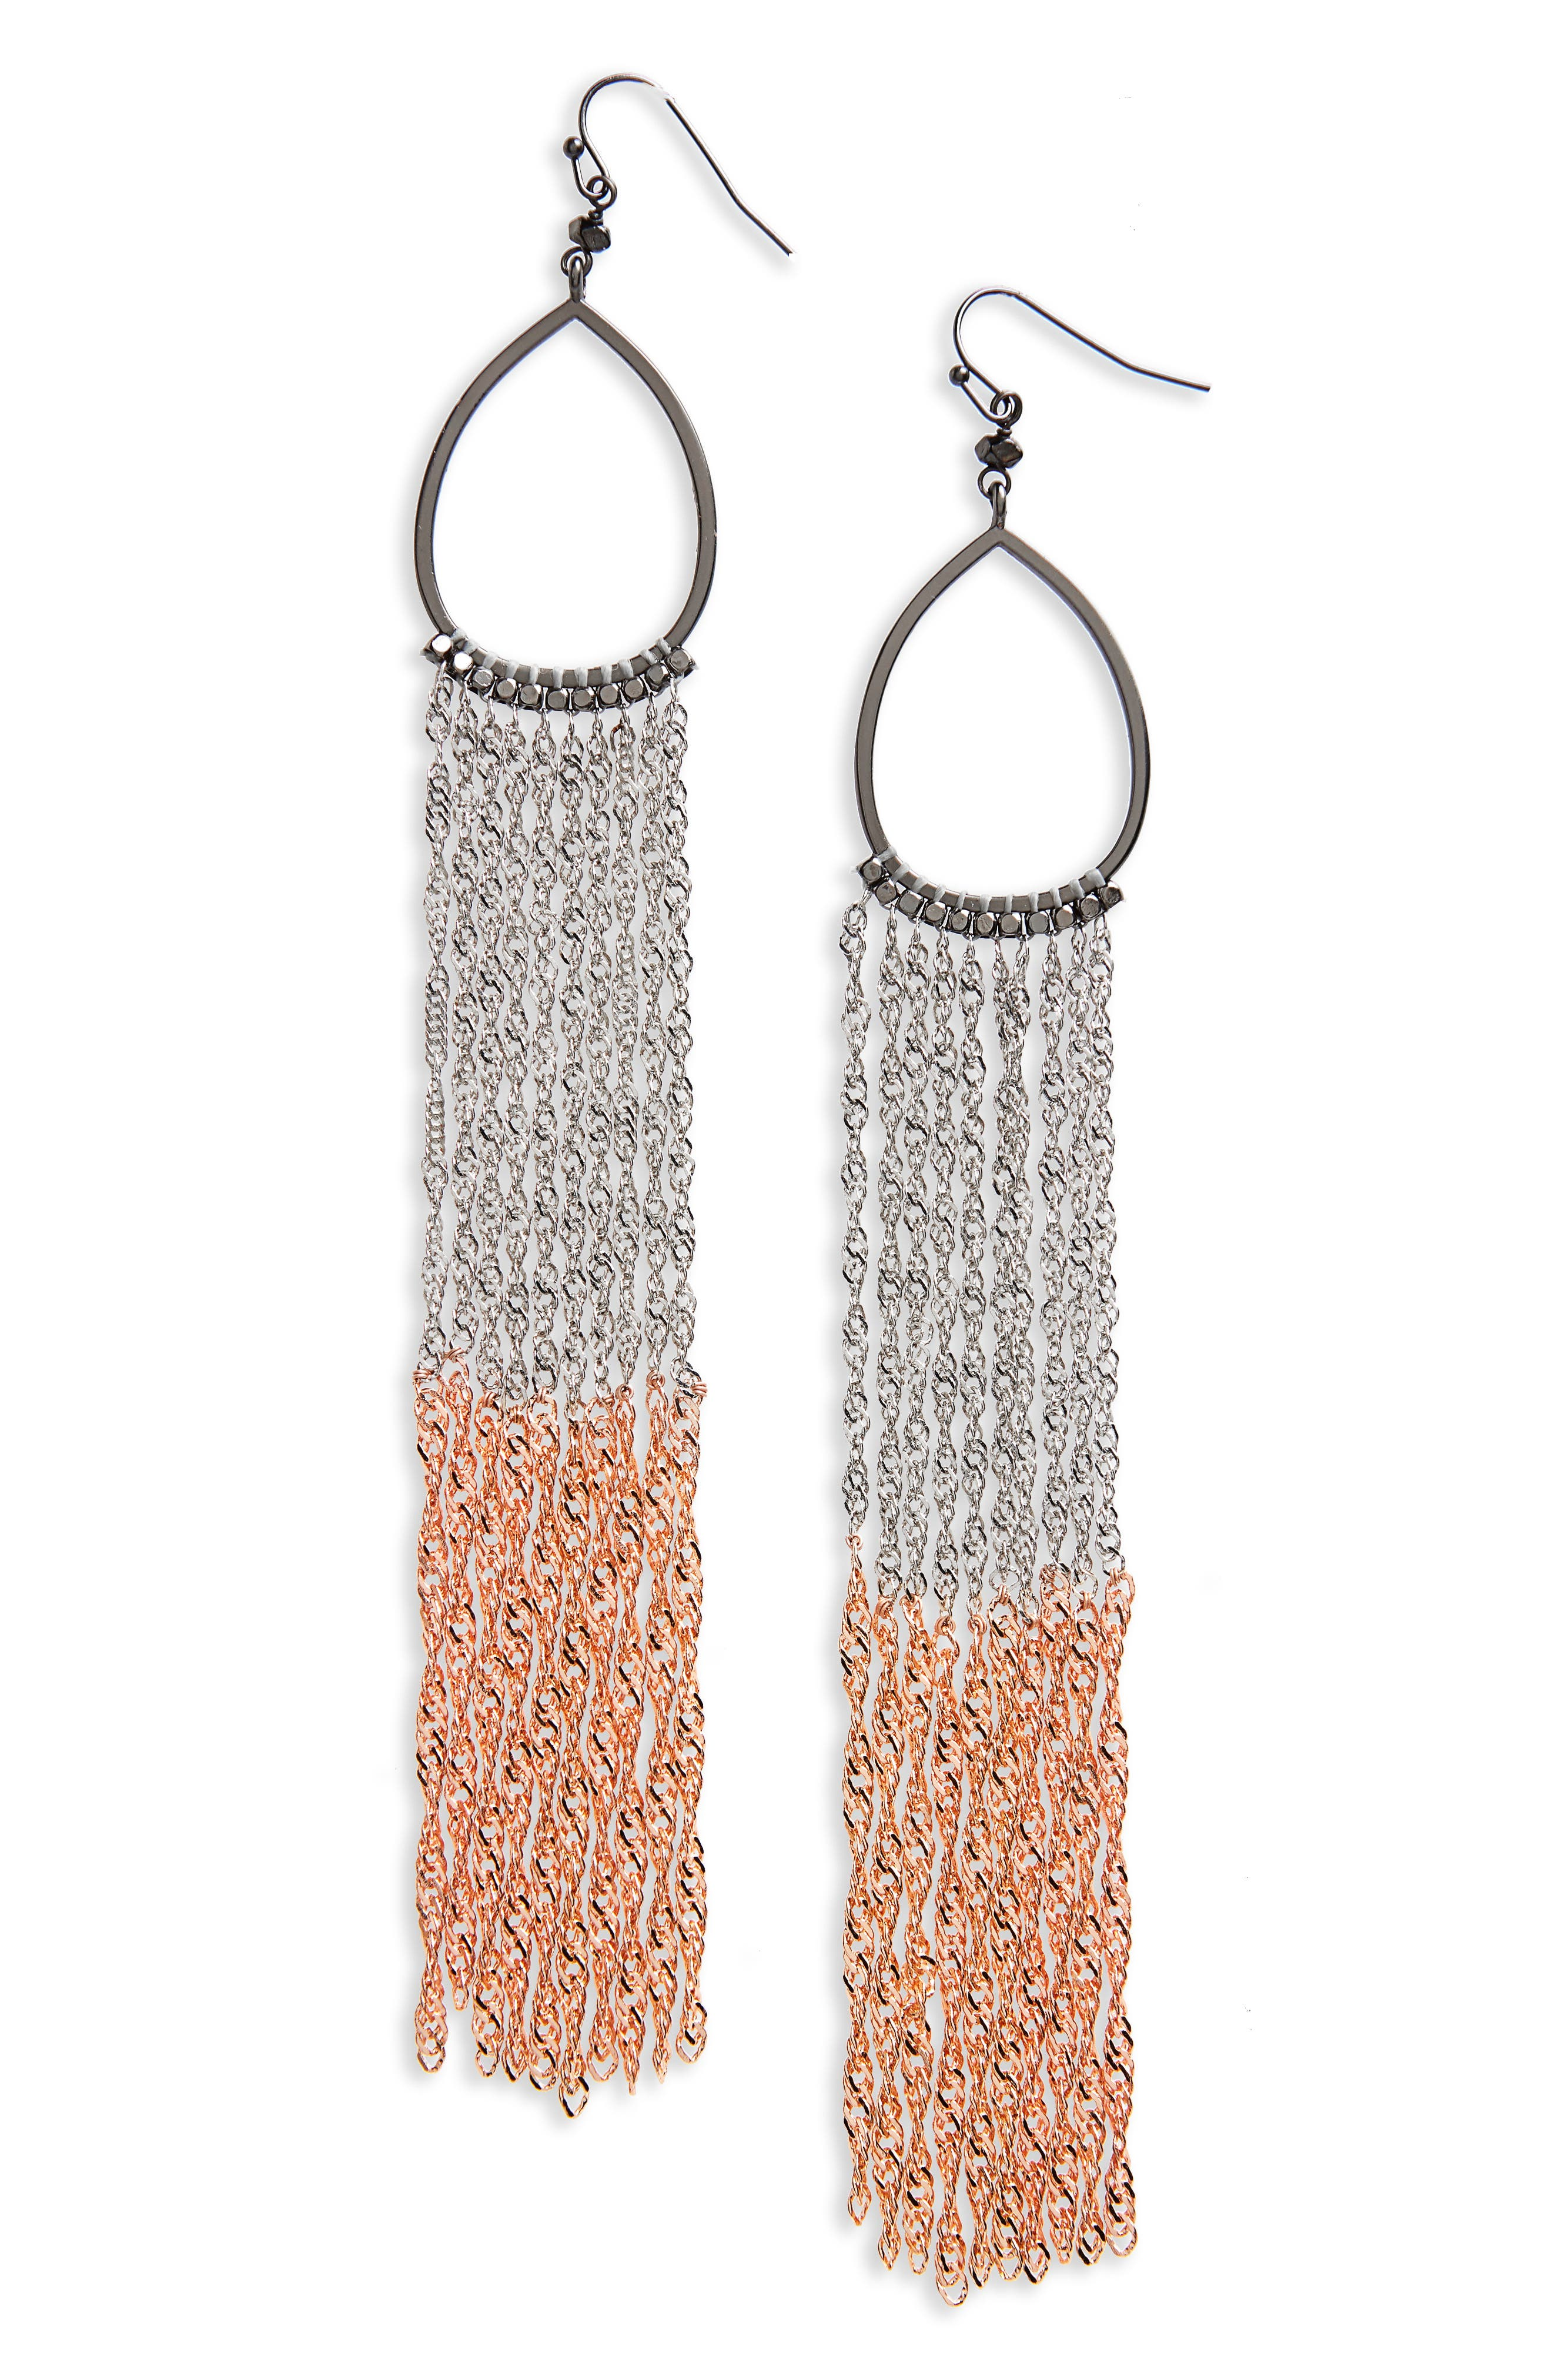 Main Image - Nakamol Design Extra Long Chain Fringe Earrings